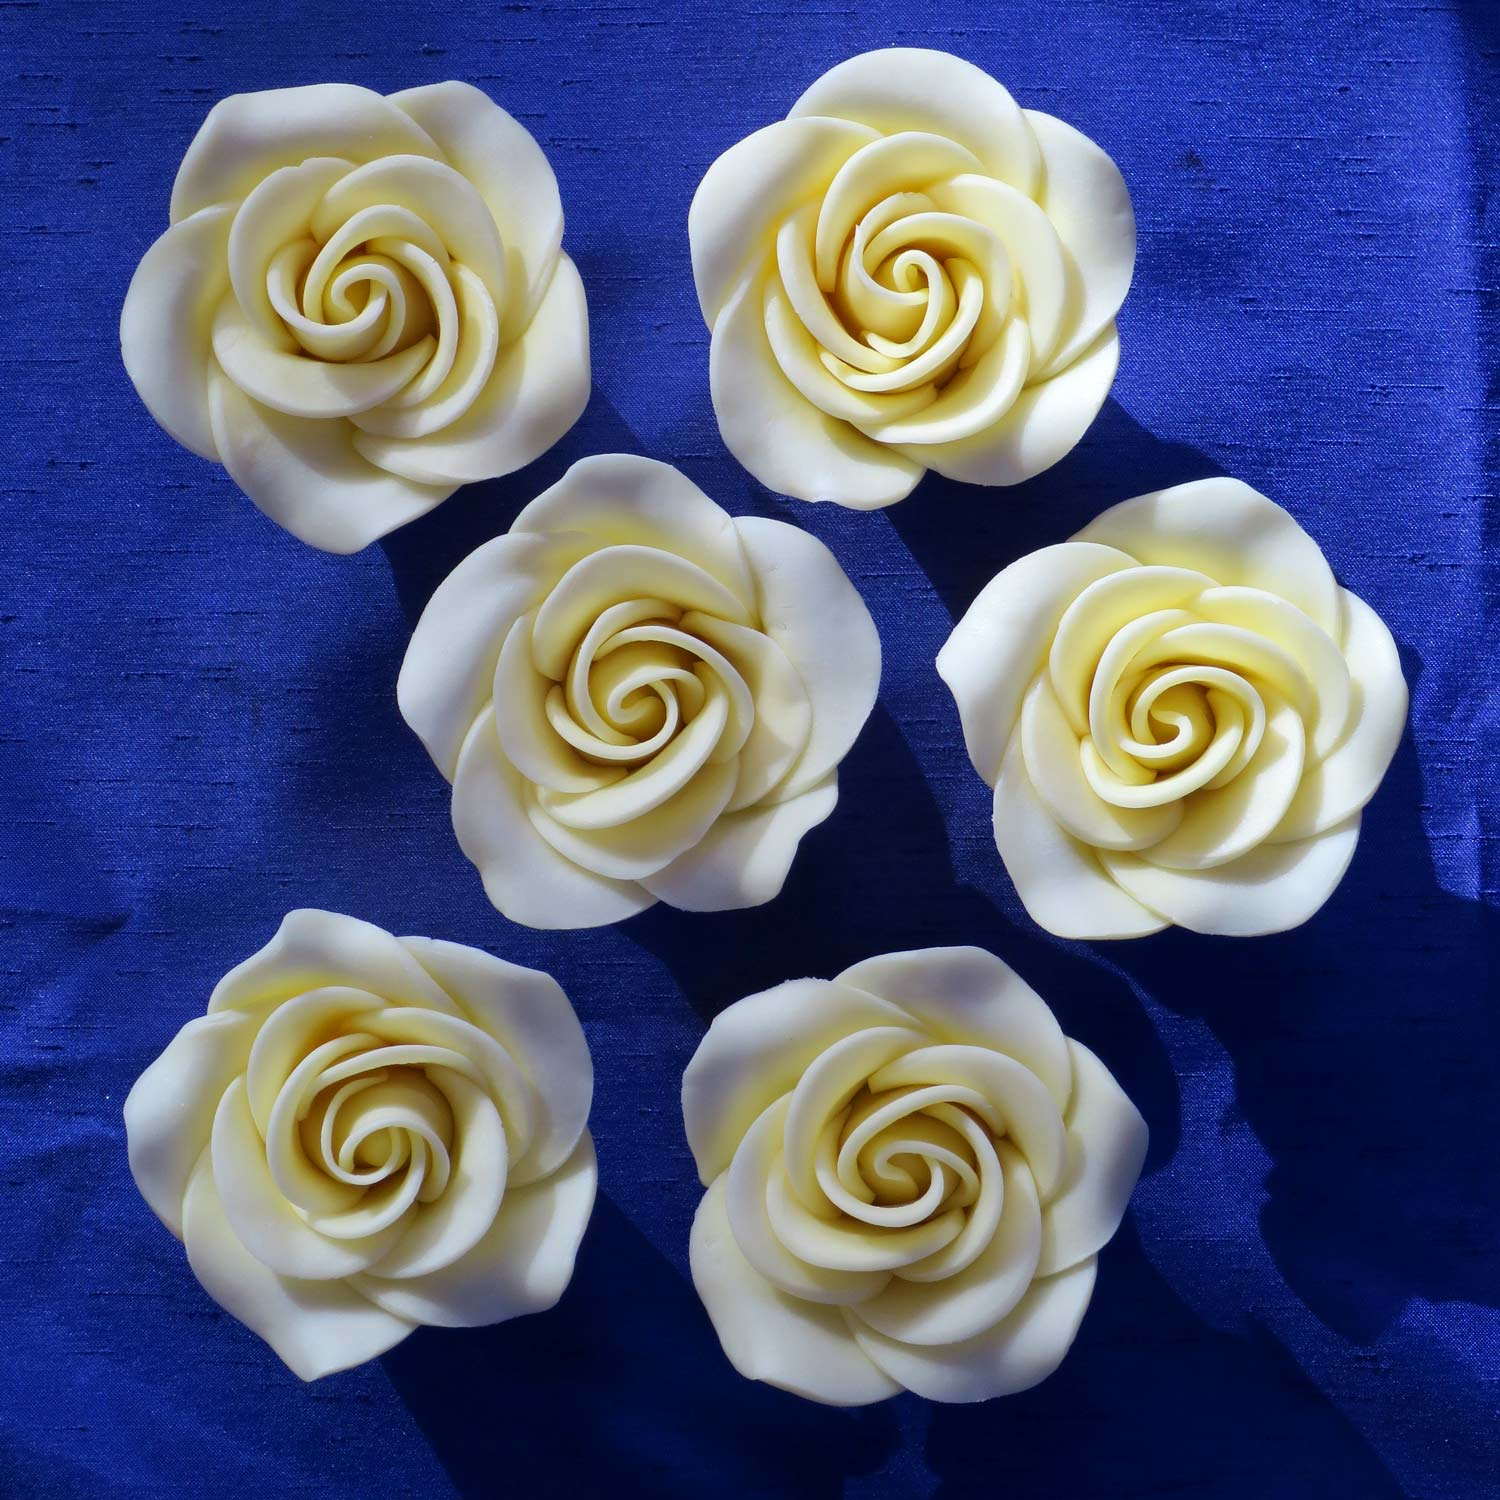 Giant White Chocolate Roses Giant White Chocolate Roses For Cake